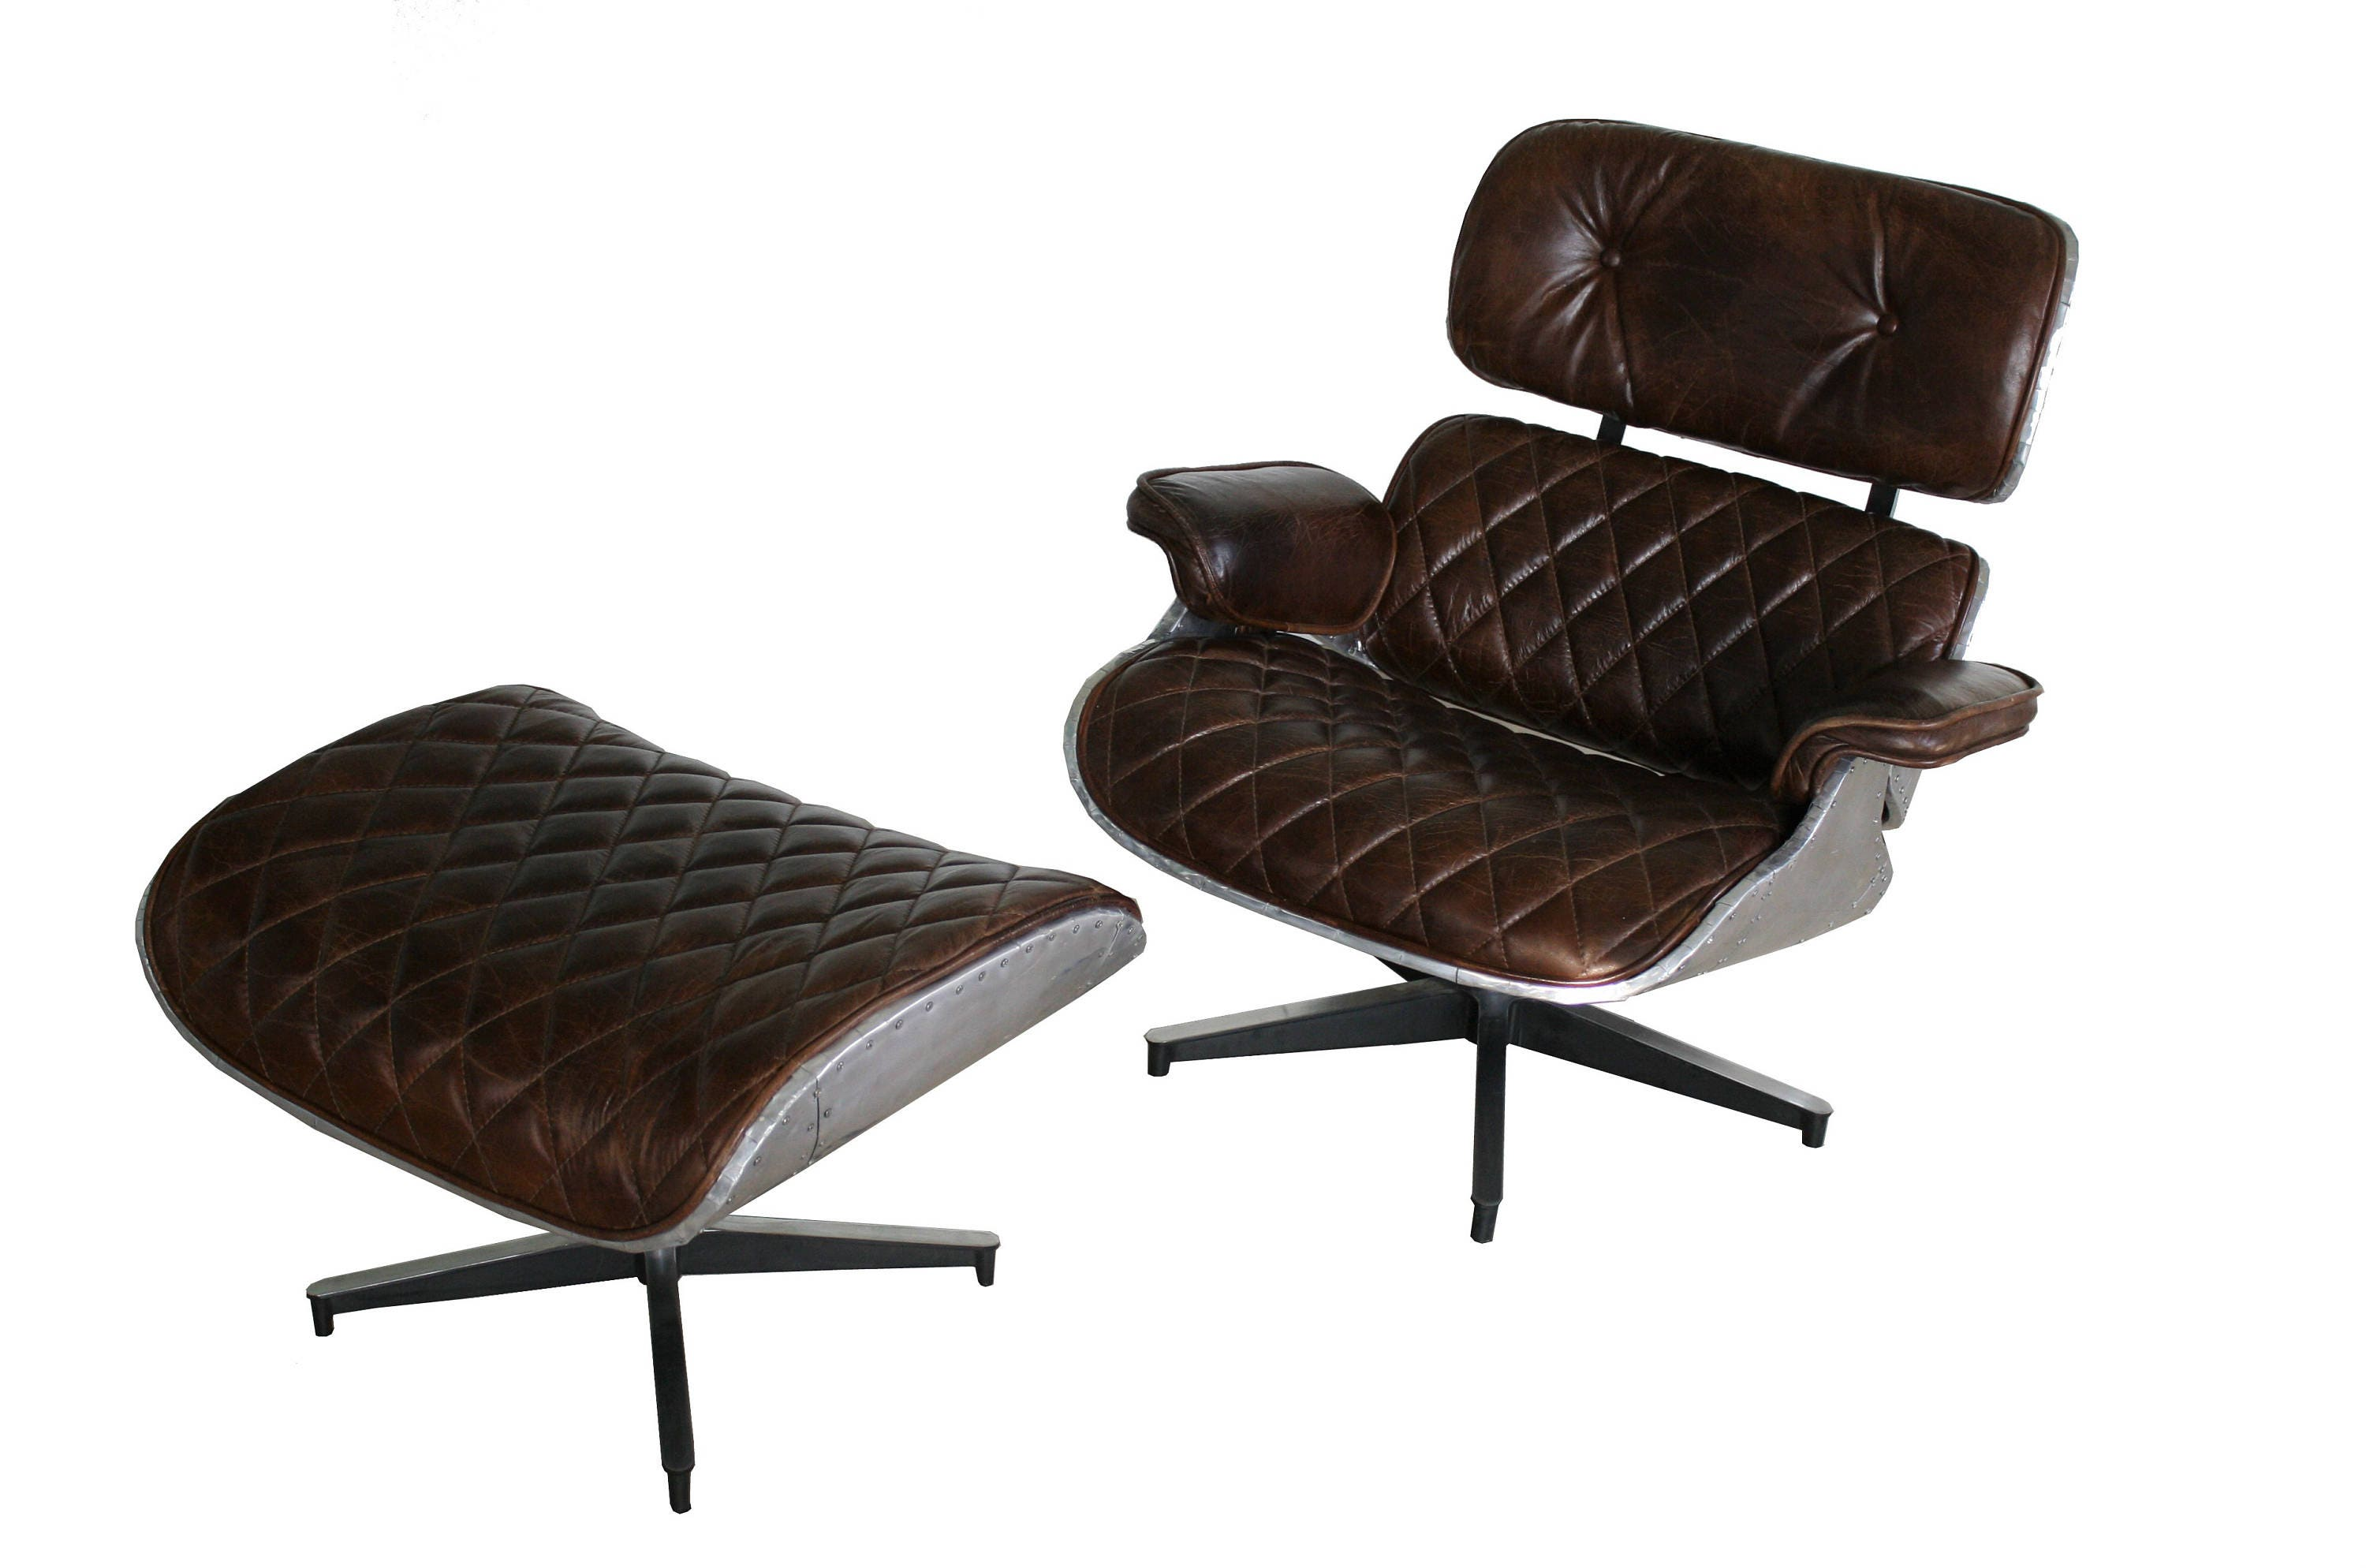 SALE PRICE Unique Eames Lounge Chair And Ottoman Aviator